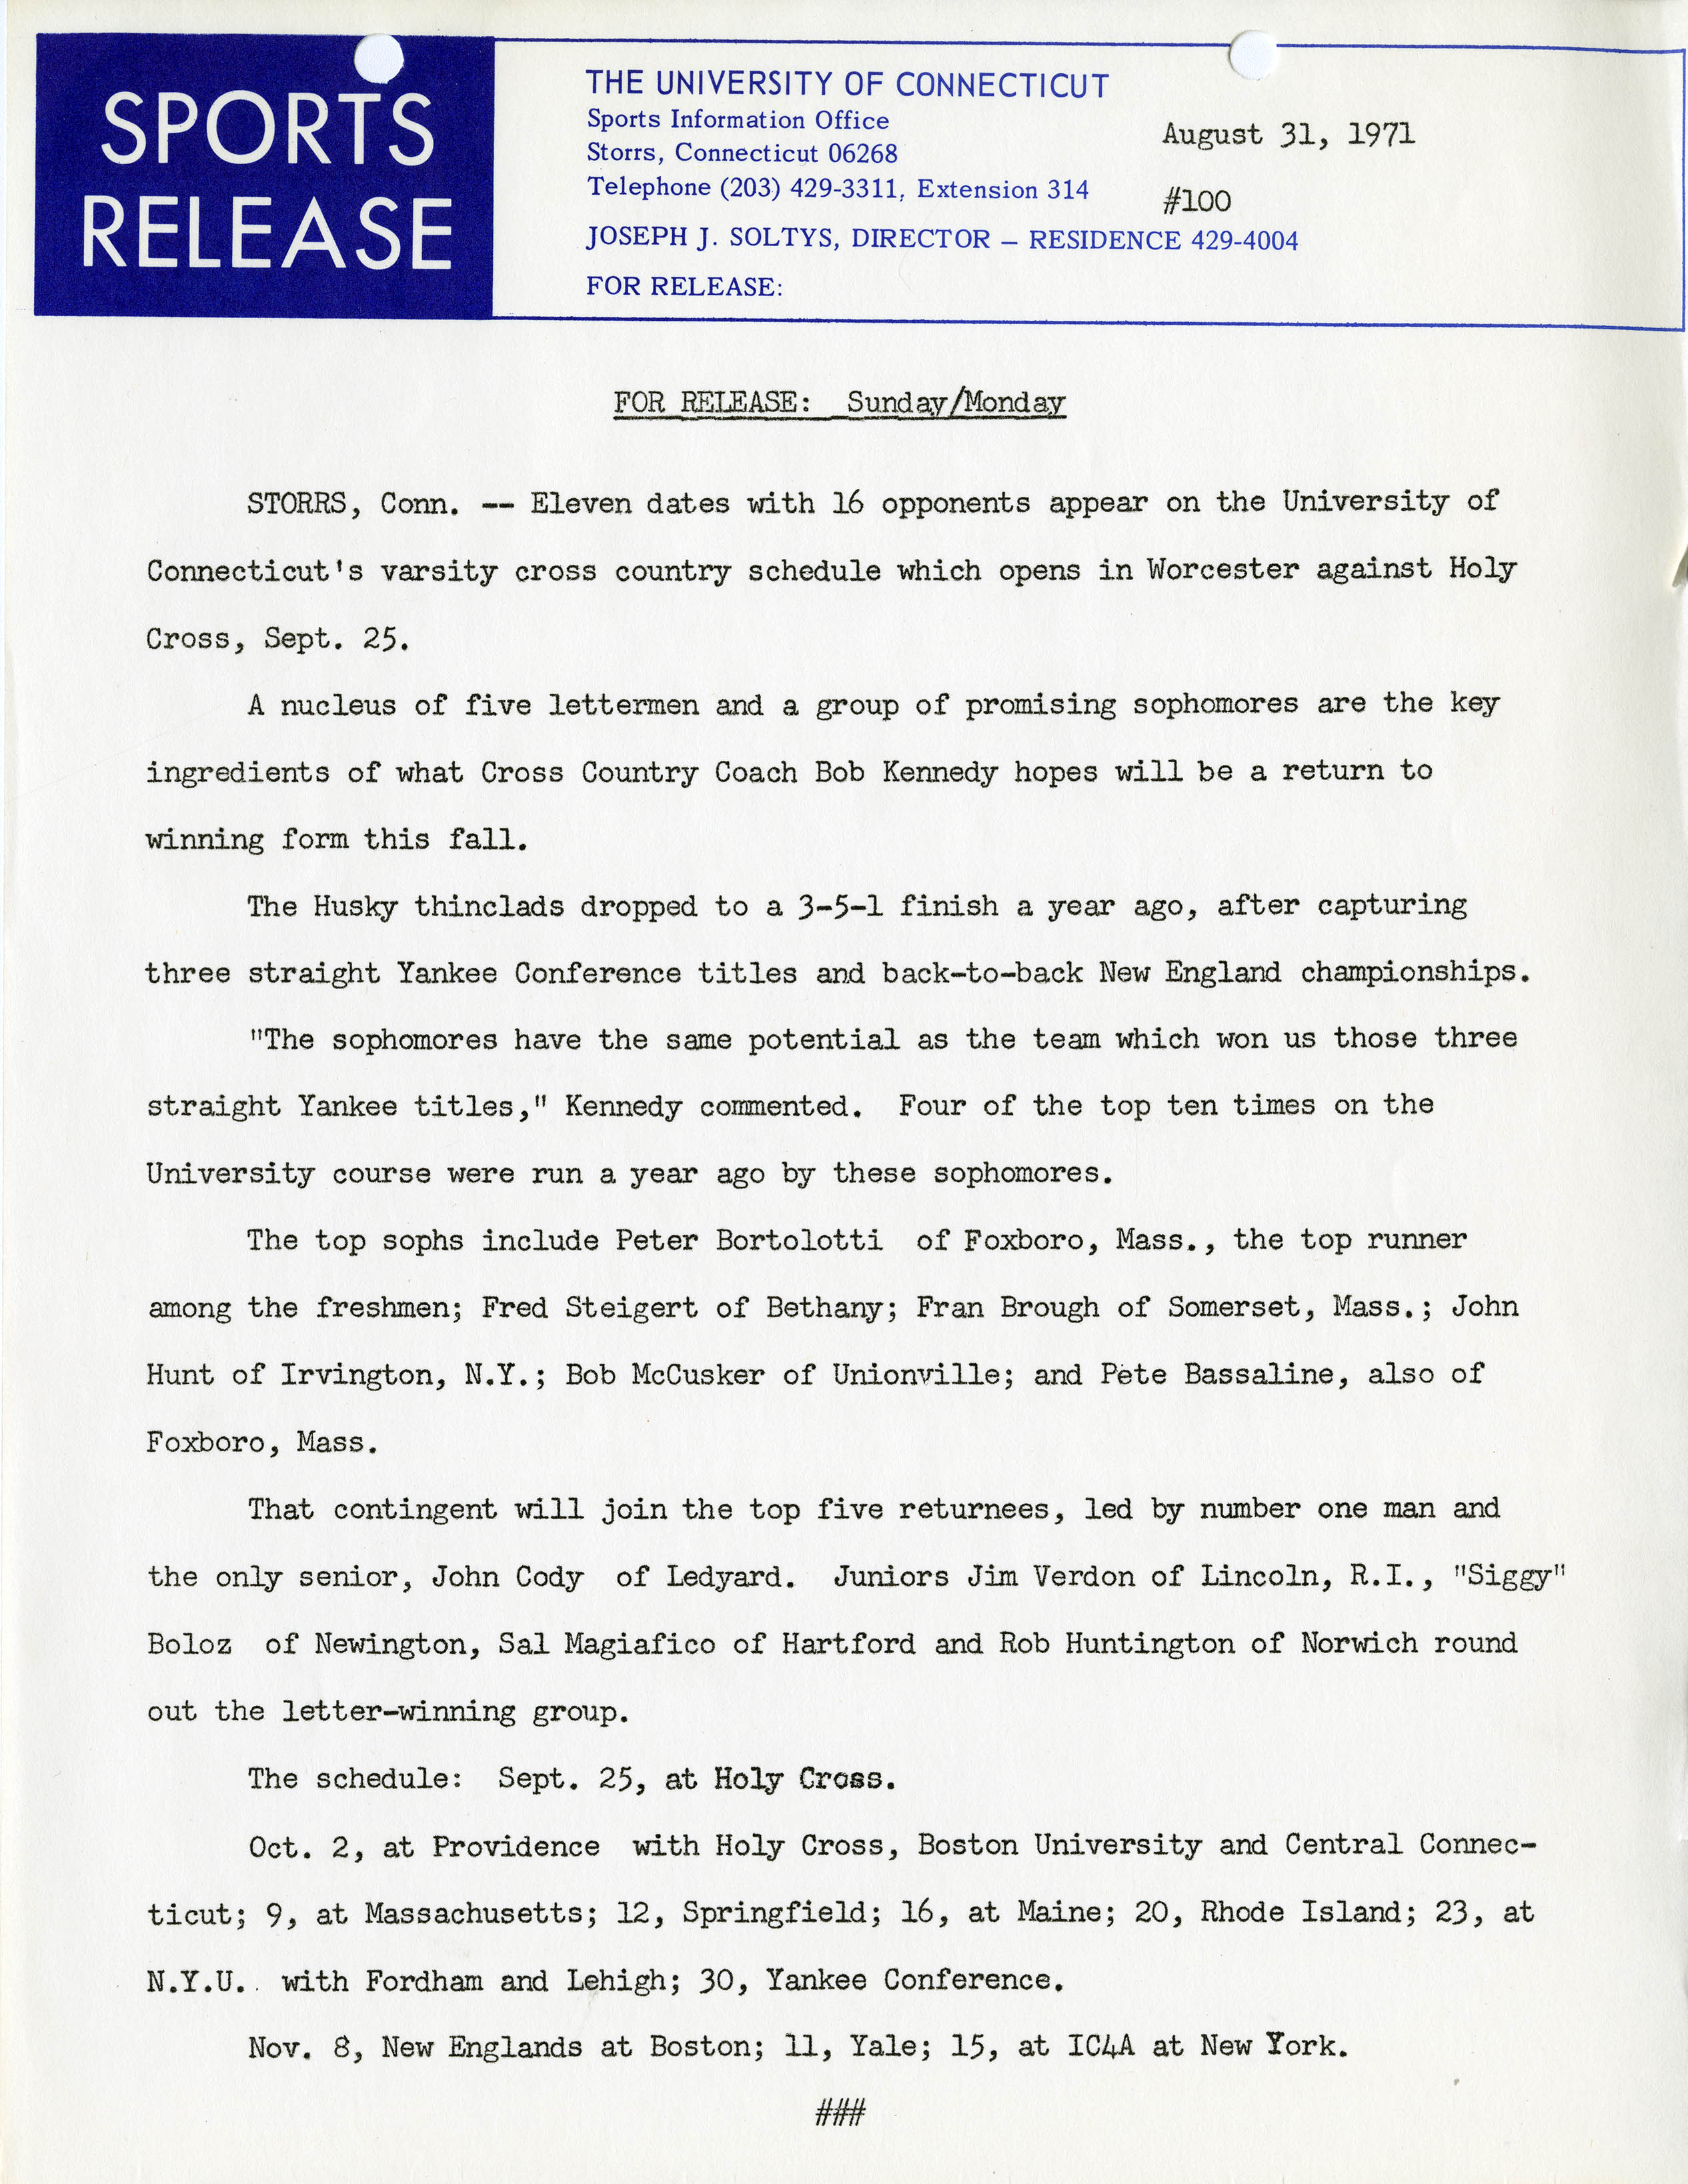 Sports Information Office Press Release, August 31, 1971